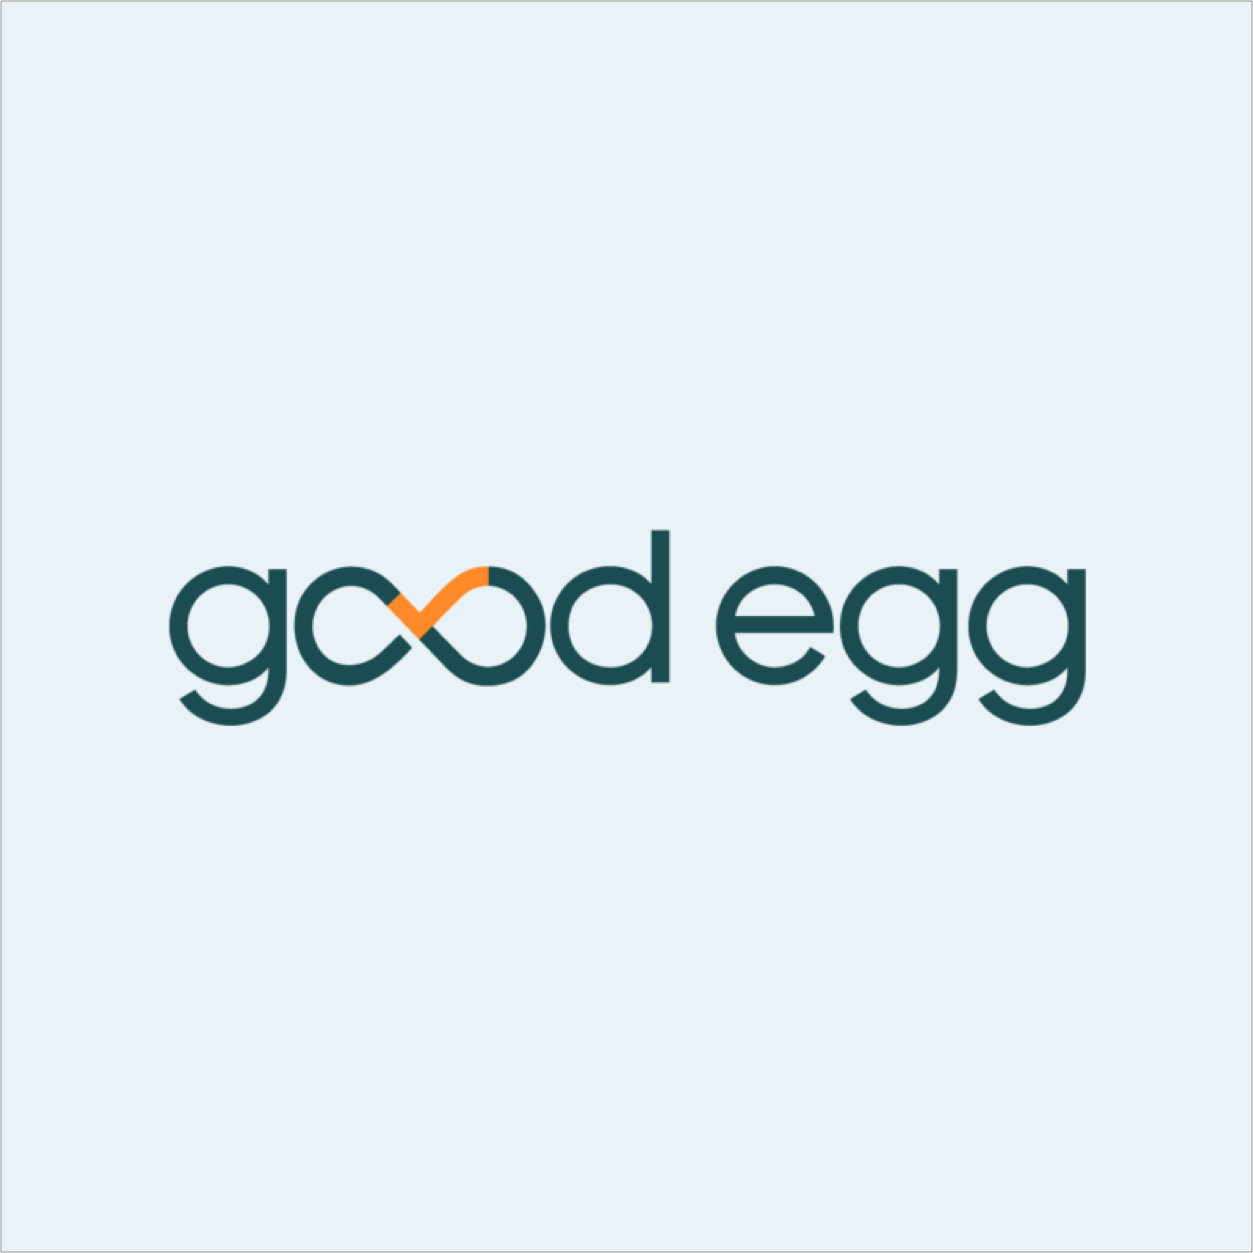 Goodegg case